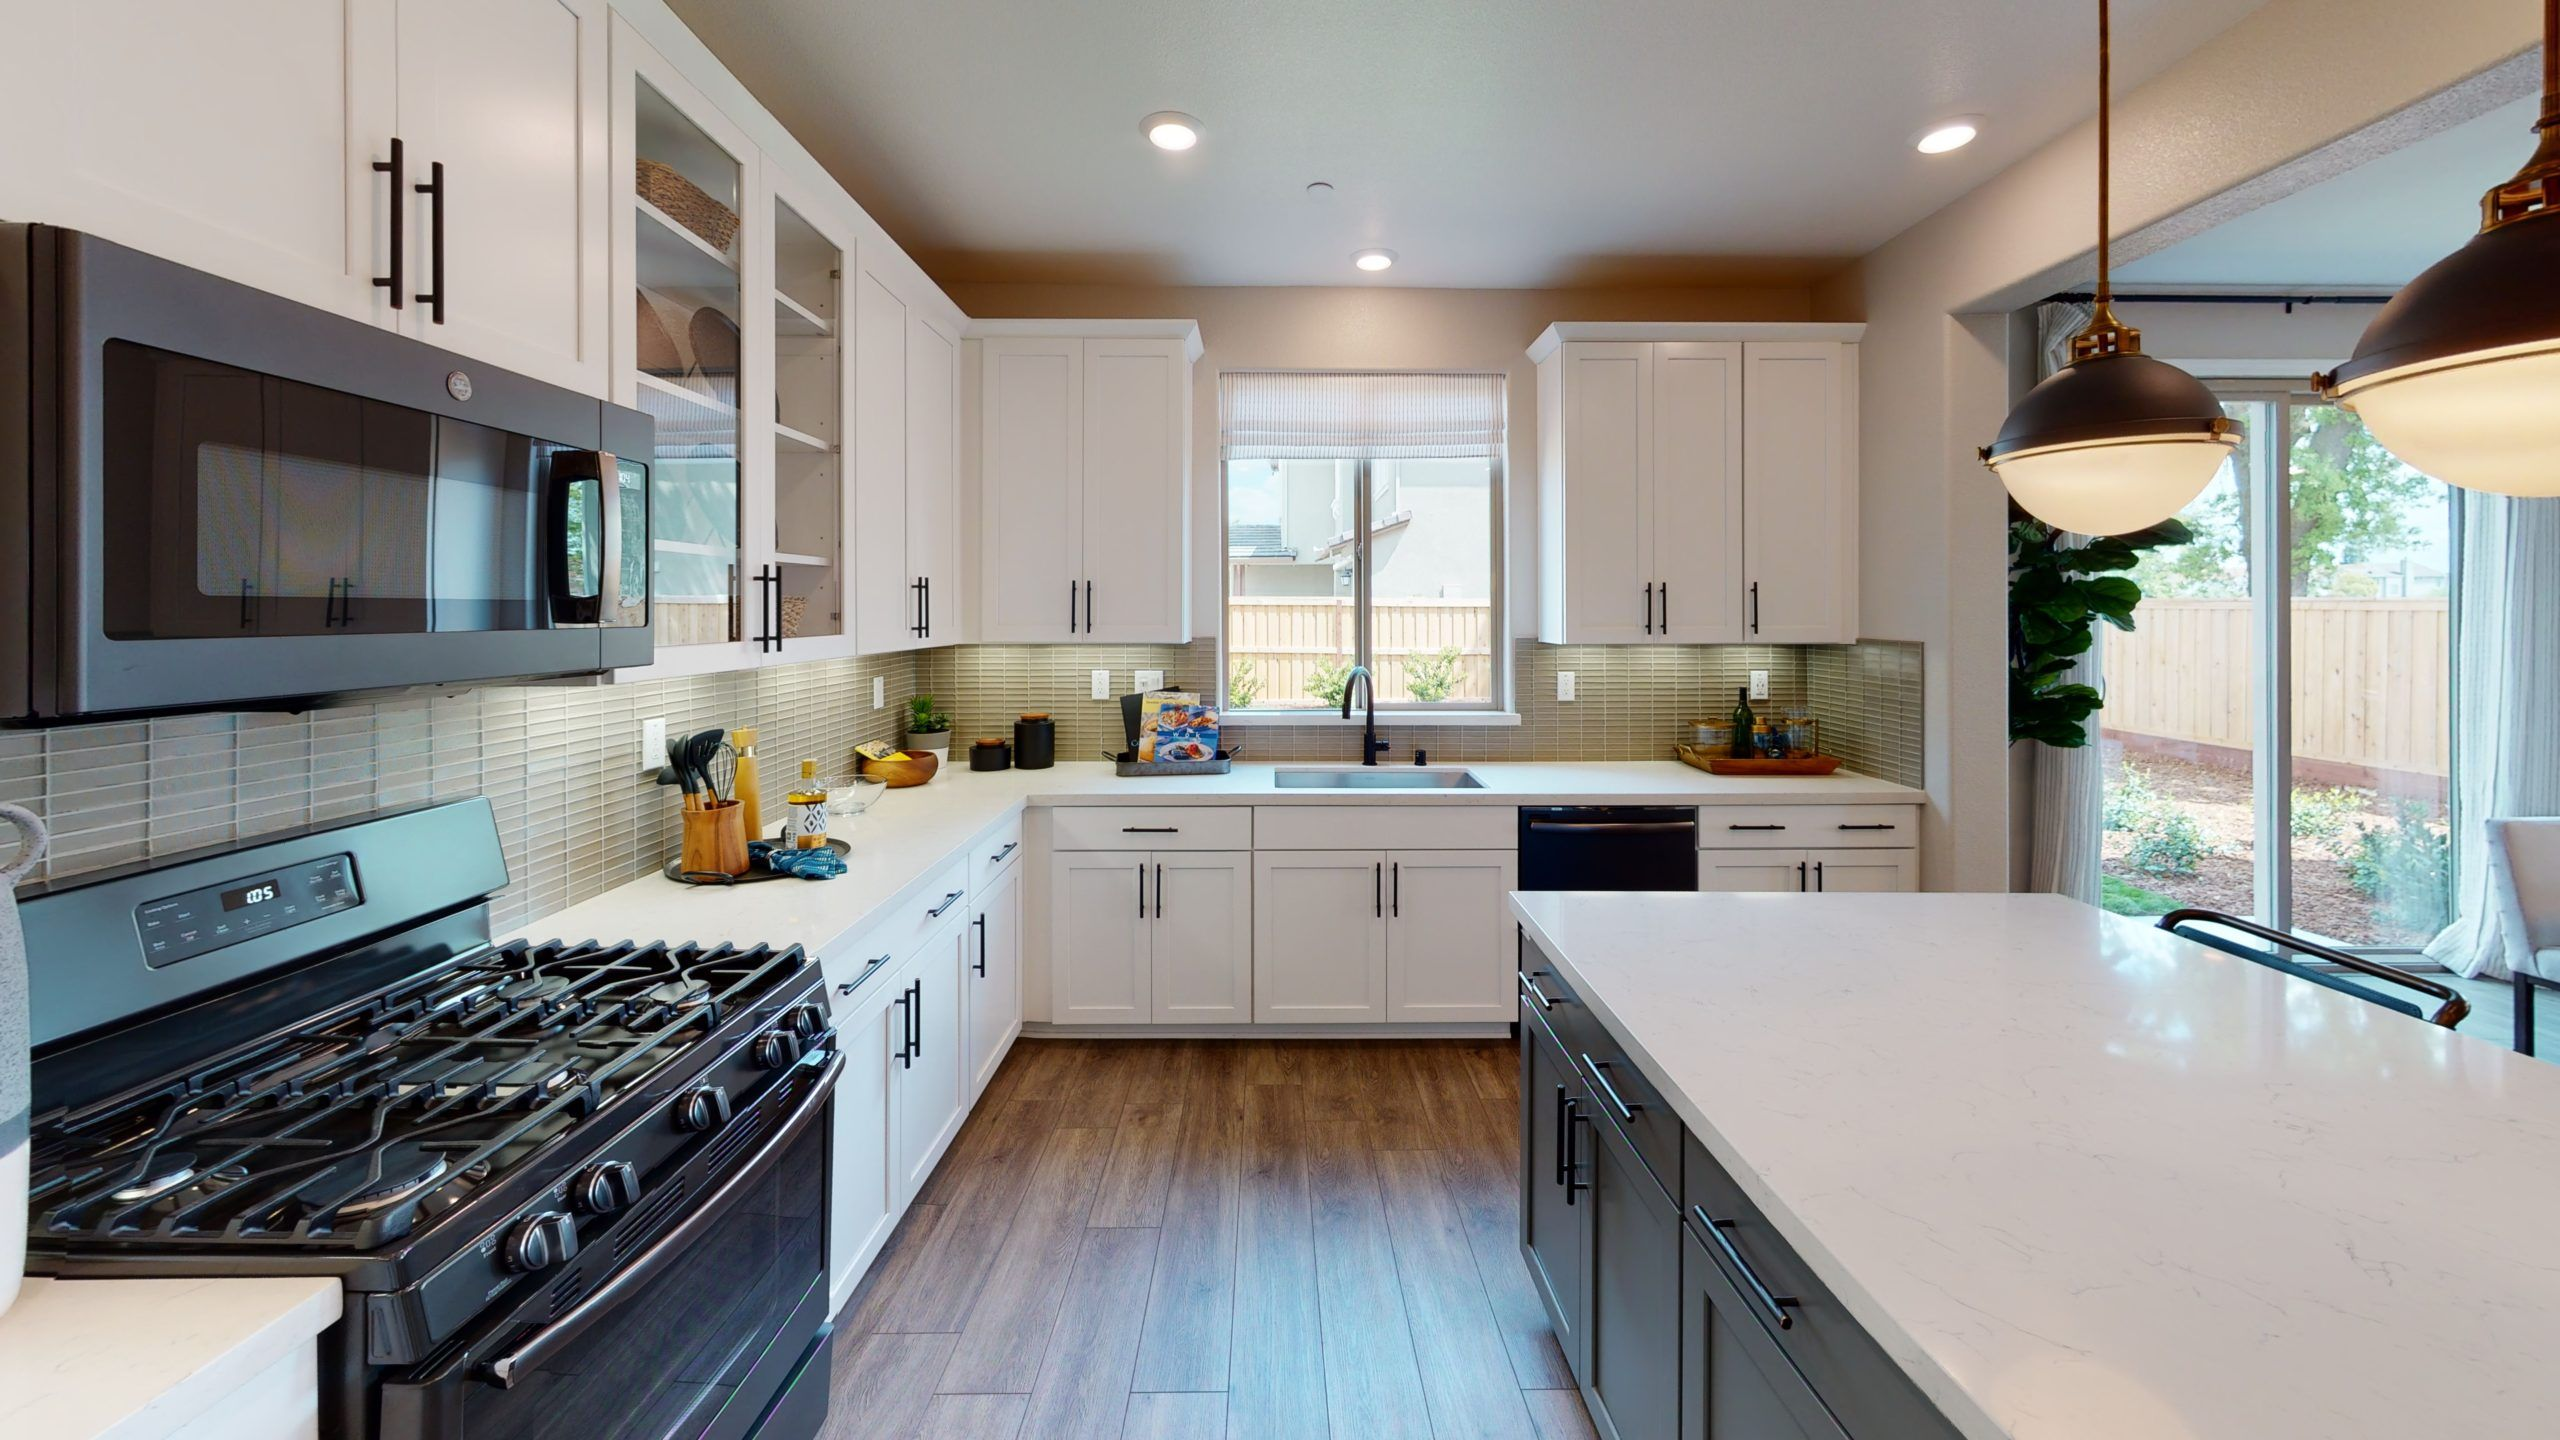 Kitchen featured in the Residence 1 By Next New Homes Group in Sacramento, CA